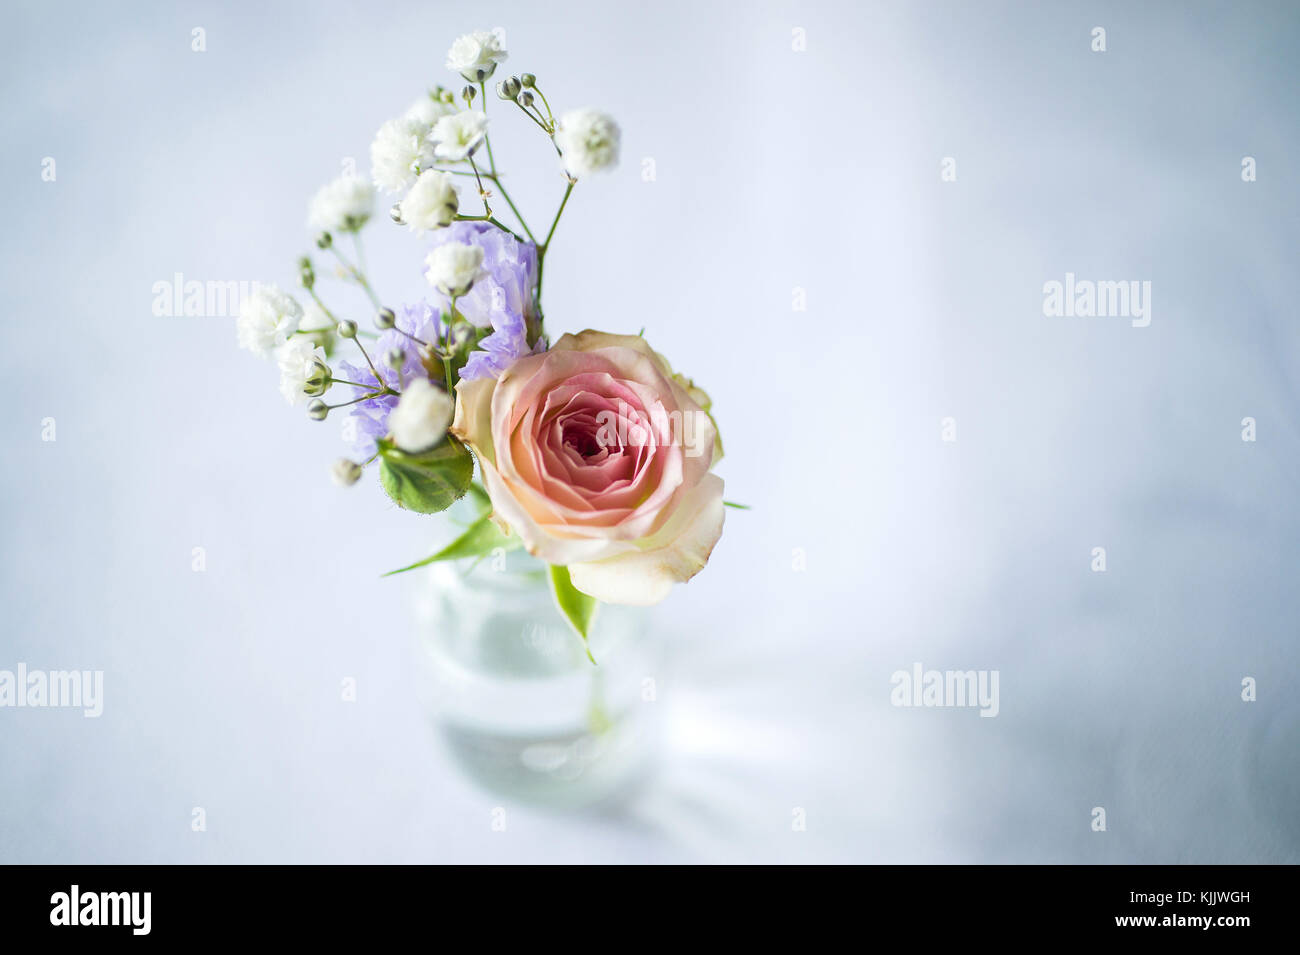 Flowers in a vase. France. - Stock Image